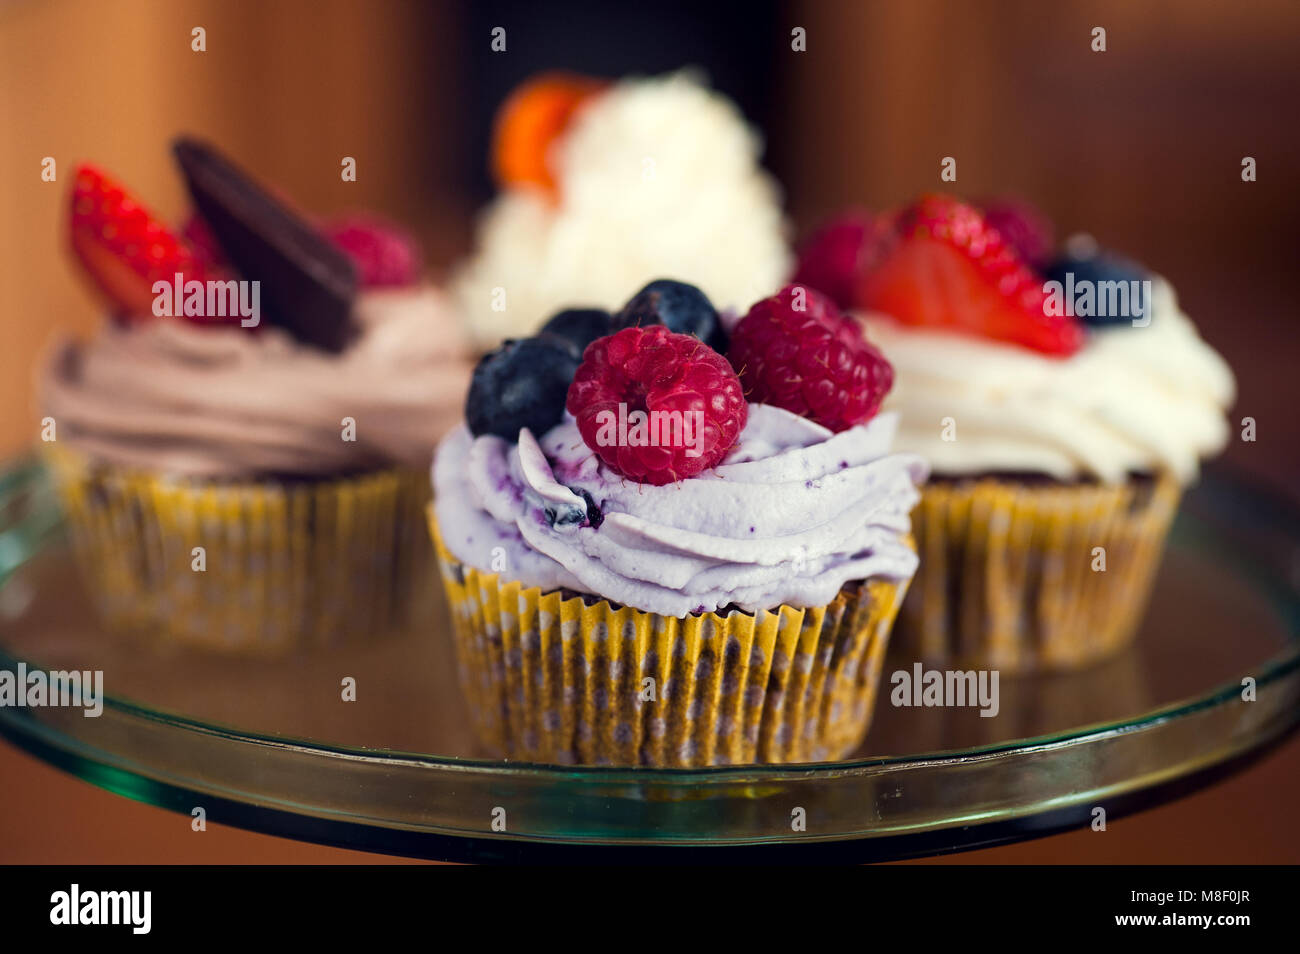 Cupcakes ready for a party to be eaten - Stock Image